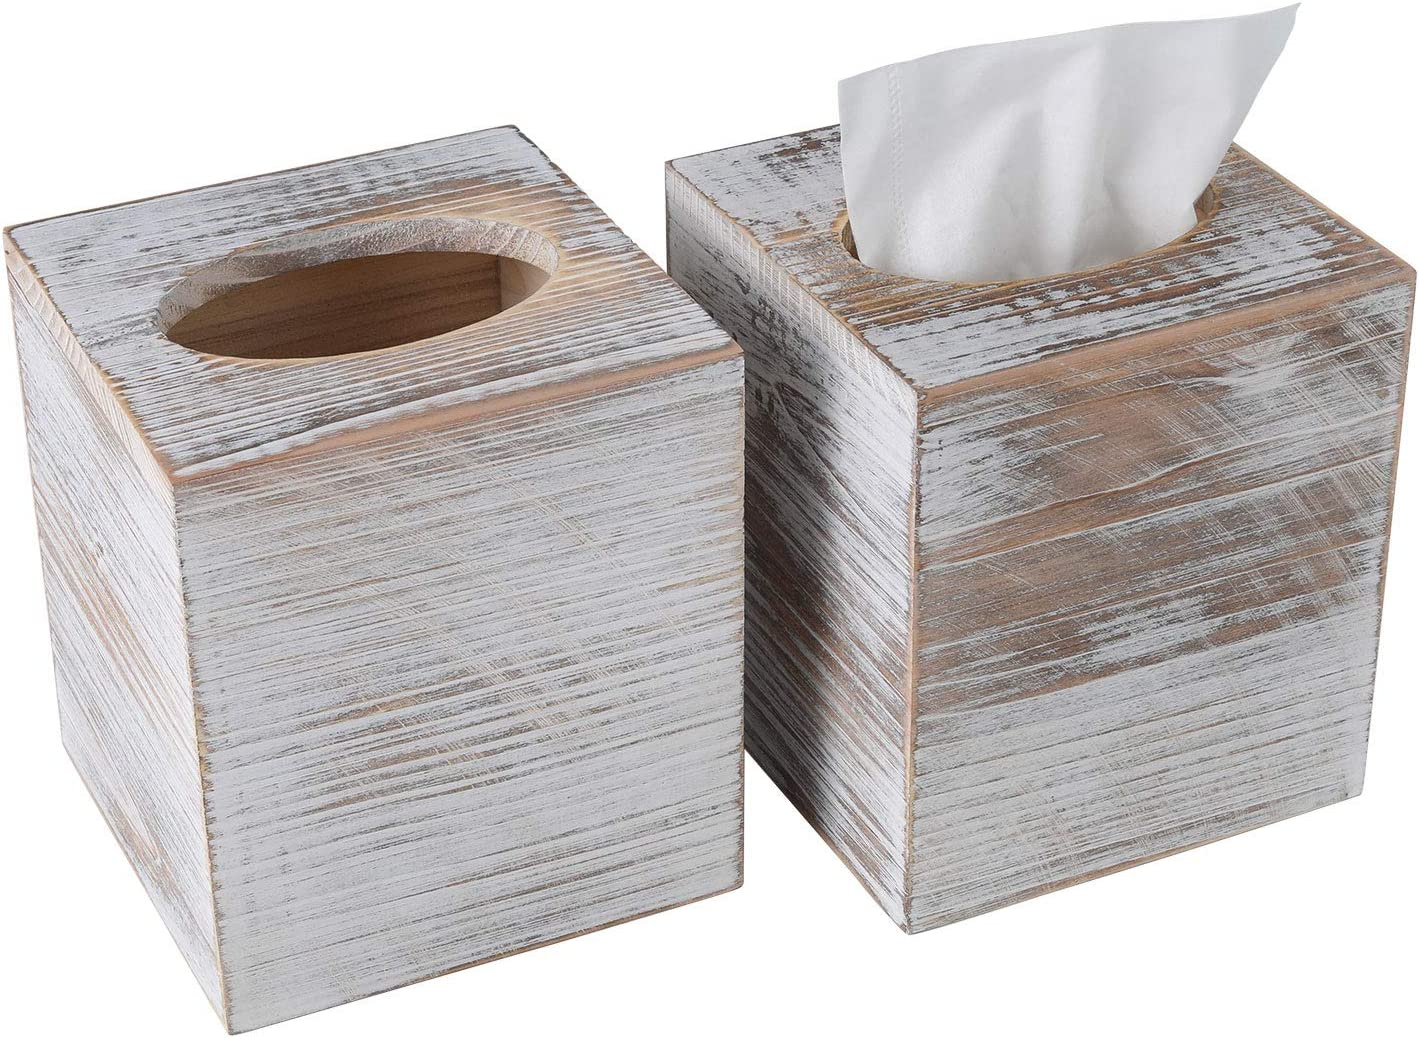 TQVAI Rustic Wood Tissue Cube Box 2 Pack Toilet Paper Holder for Bathroom, Kitchen, Countertop, Living Room Decor